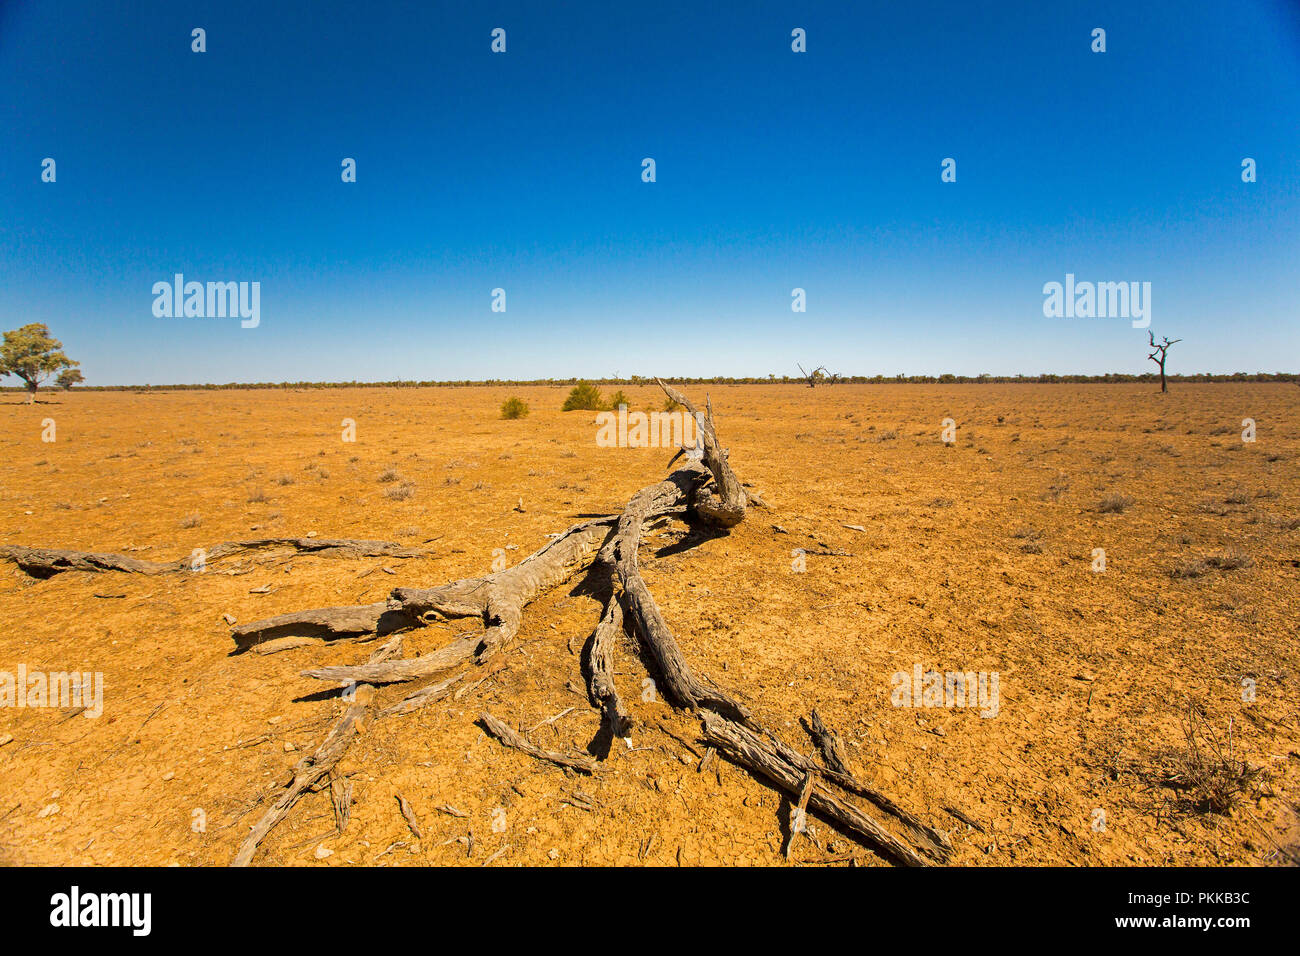 Australian outback landscape during drought with treeless red and stony plains stretching to horizon under blue sky in Queensland - Stock Image